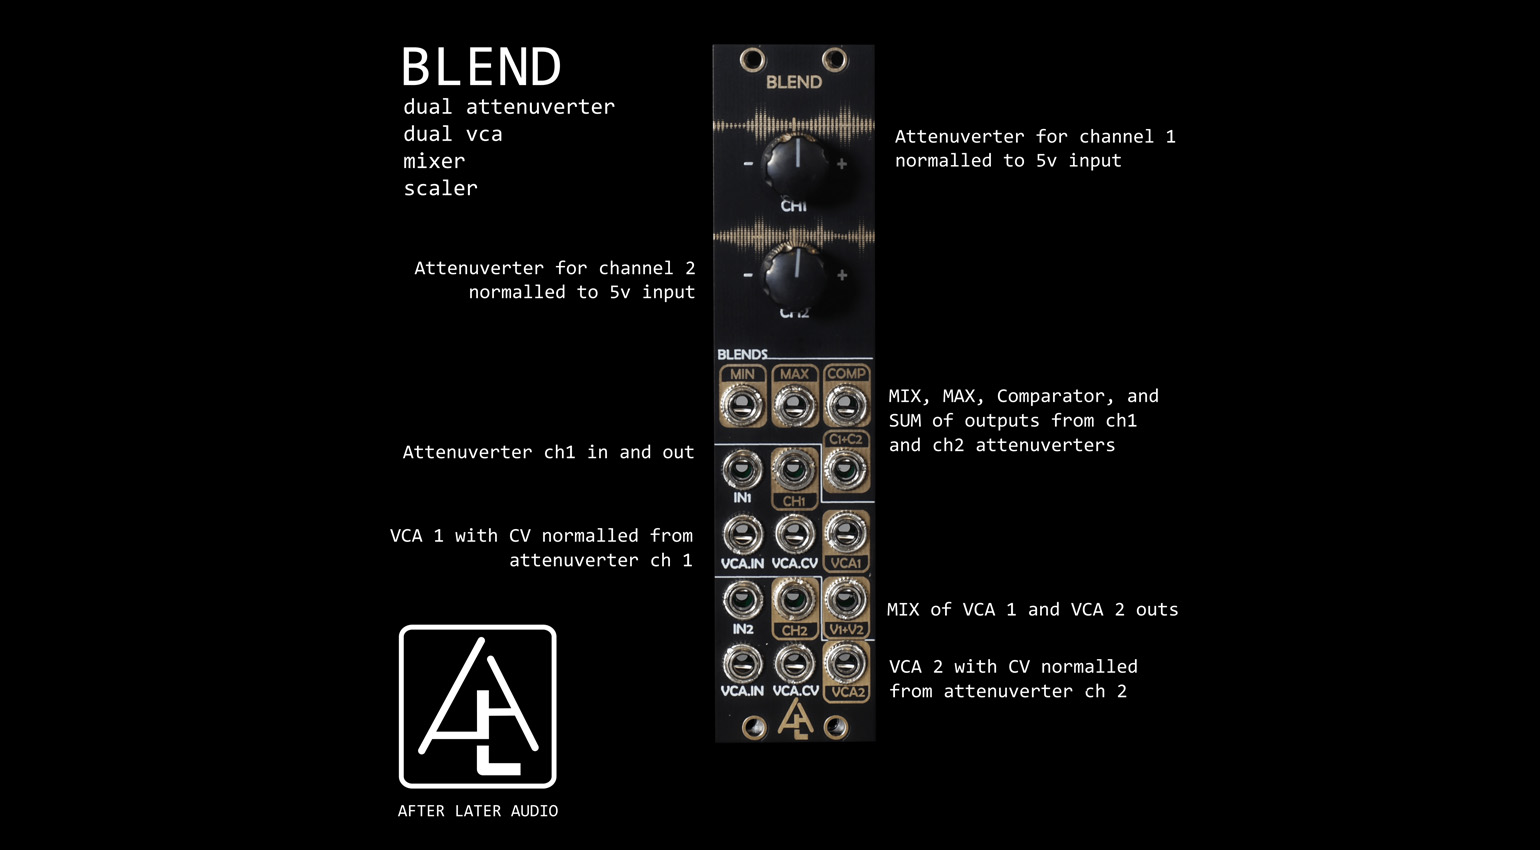 After Later Audio BLEND